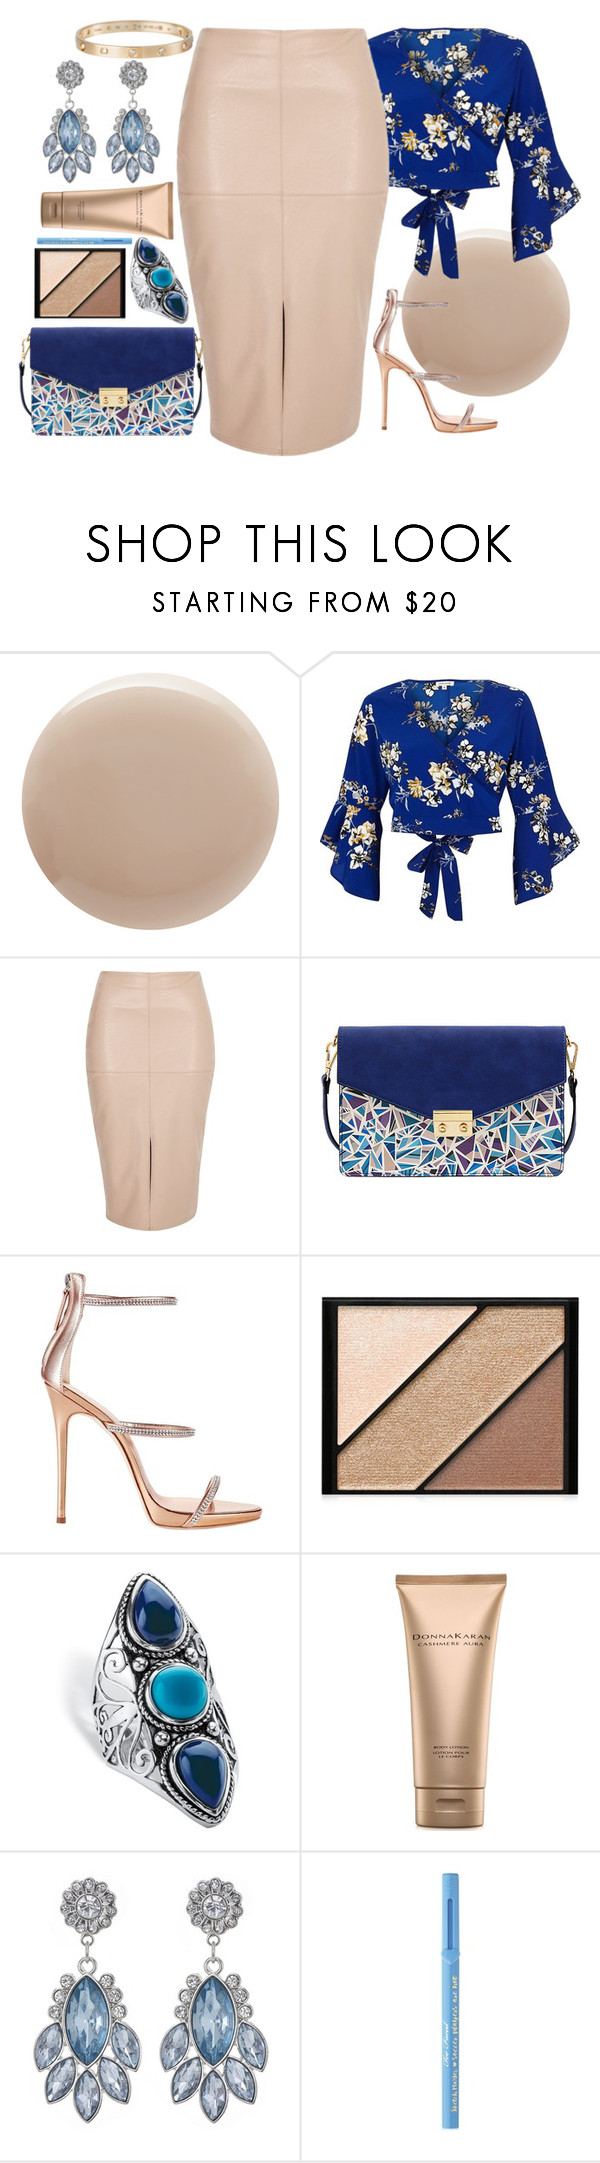 """""""Untitled #226"""" by cristianamikaelson ❤ liked on Polyvore featuring Oribe, River Island, Mellow World, Giuseppe Zanotti, Elizabeth Arden, Palm Beach Jewelry, Donna Karan, Too Faced Cosmetics and Cartier"""